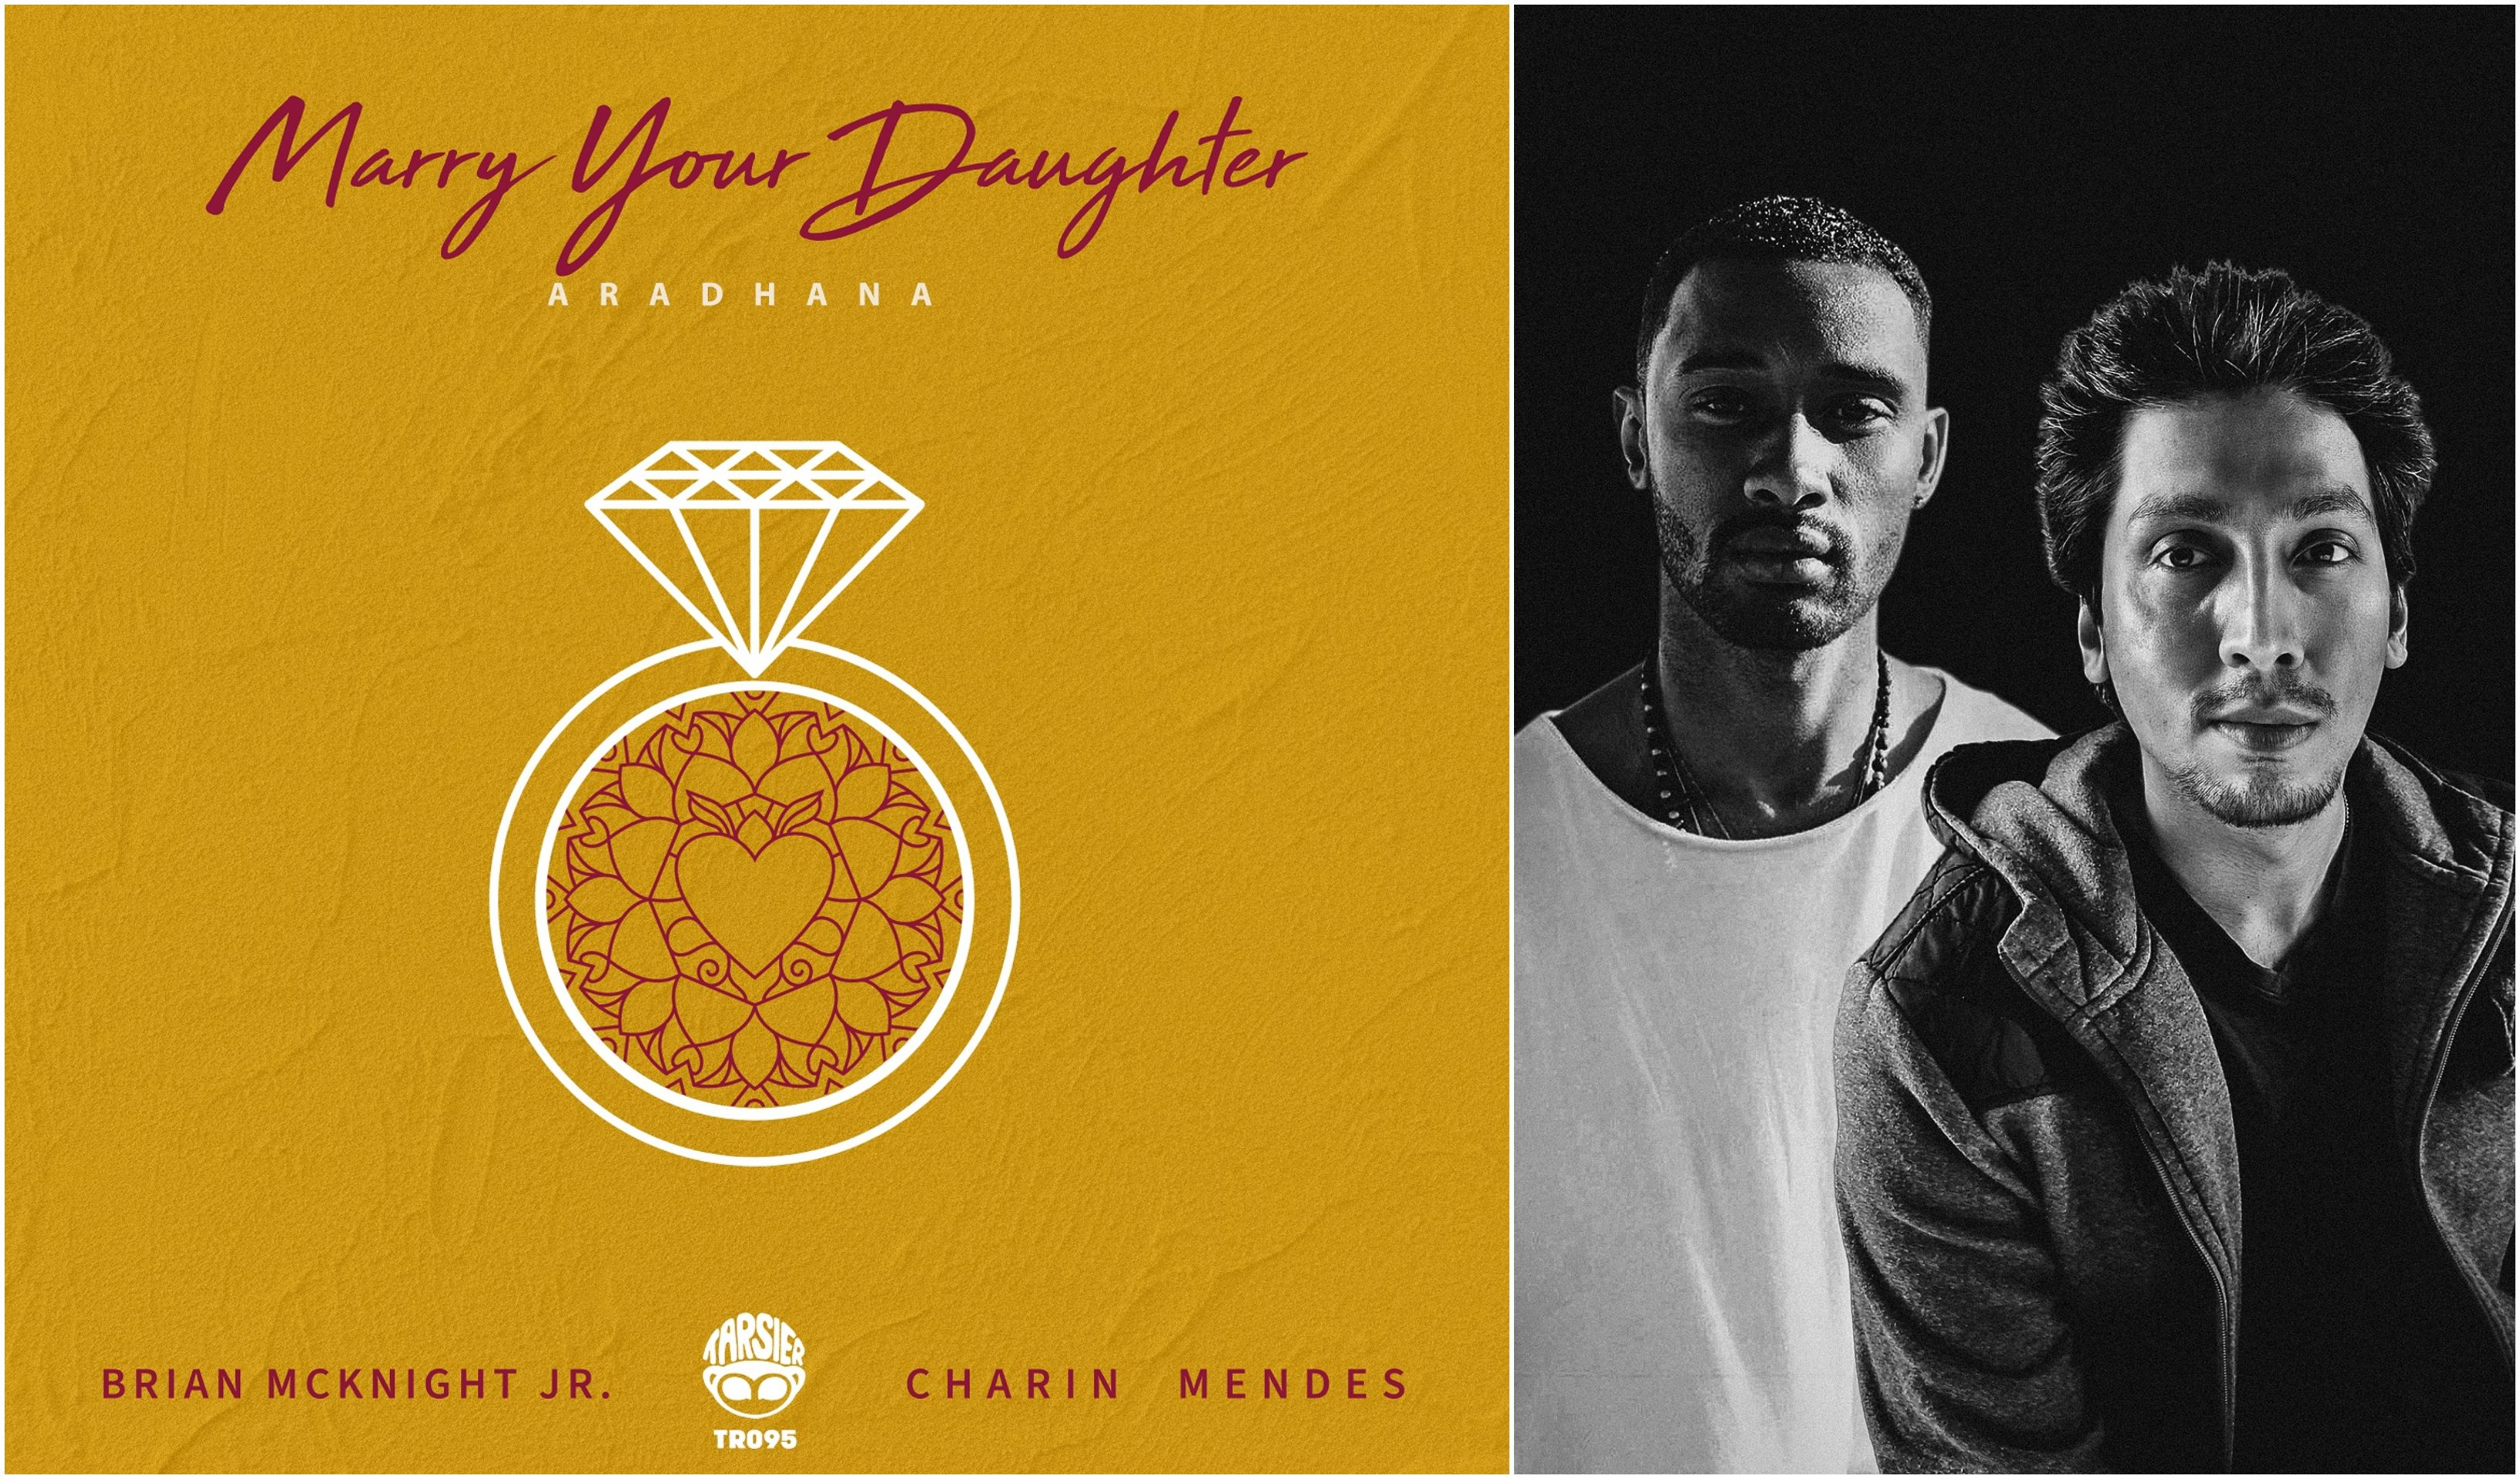 """Brian Mcknight Jr. and Sri Lankan Charin Mendes team up for """"Marry Your Daughter (Aradhana)"""""""